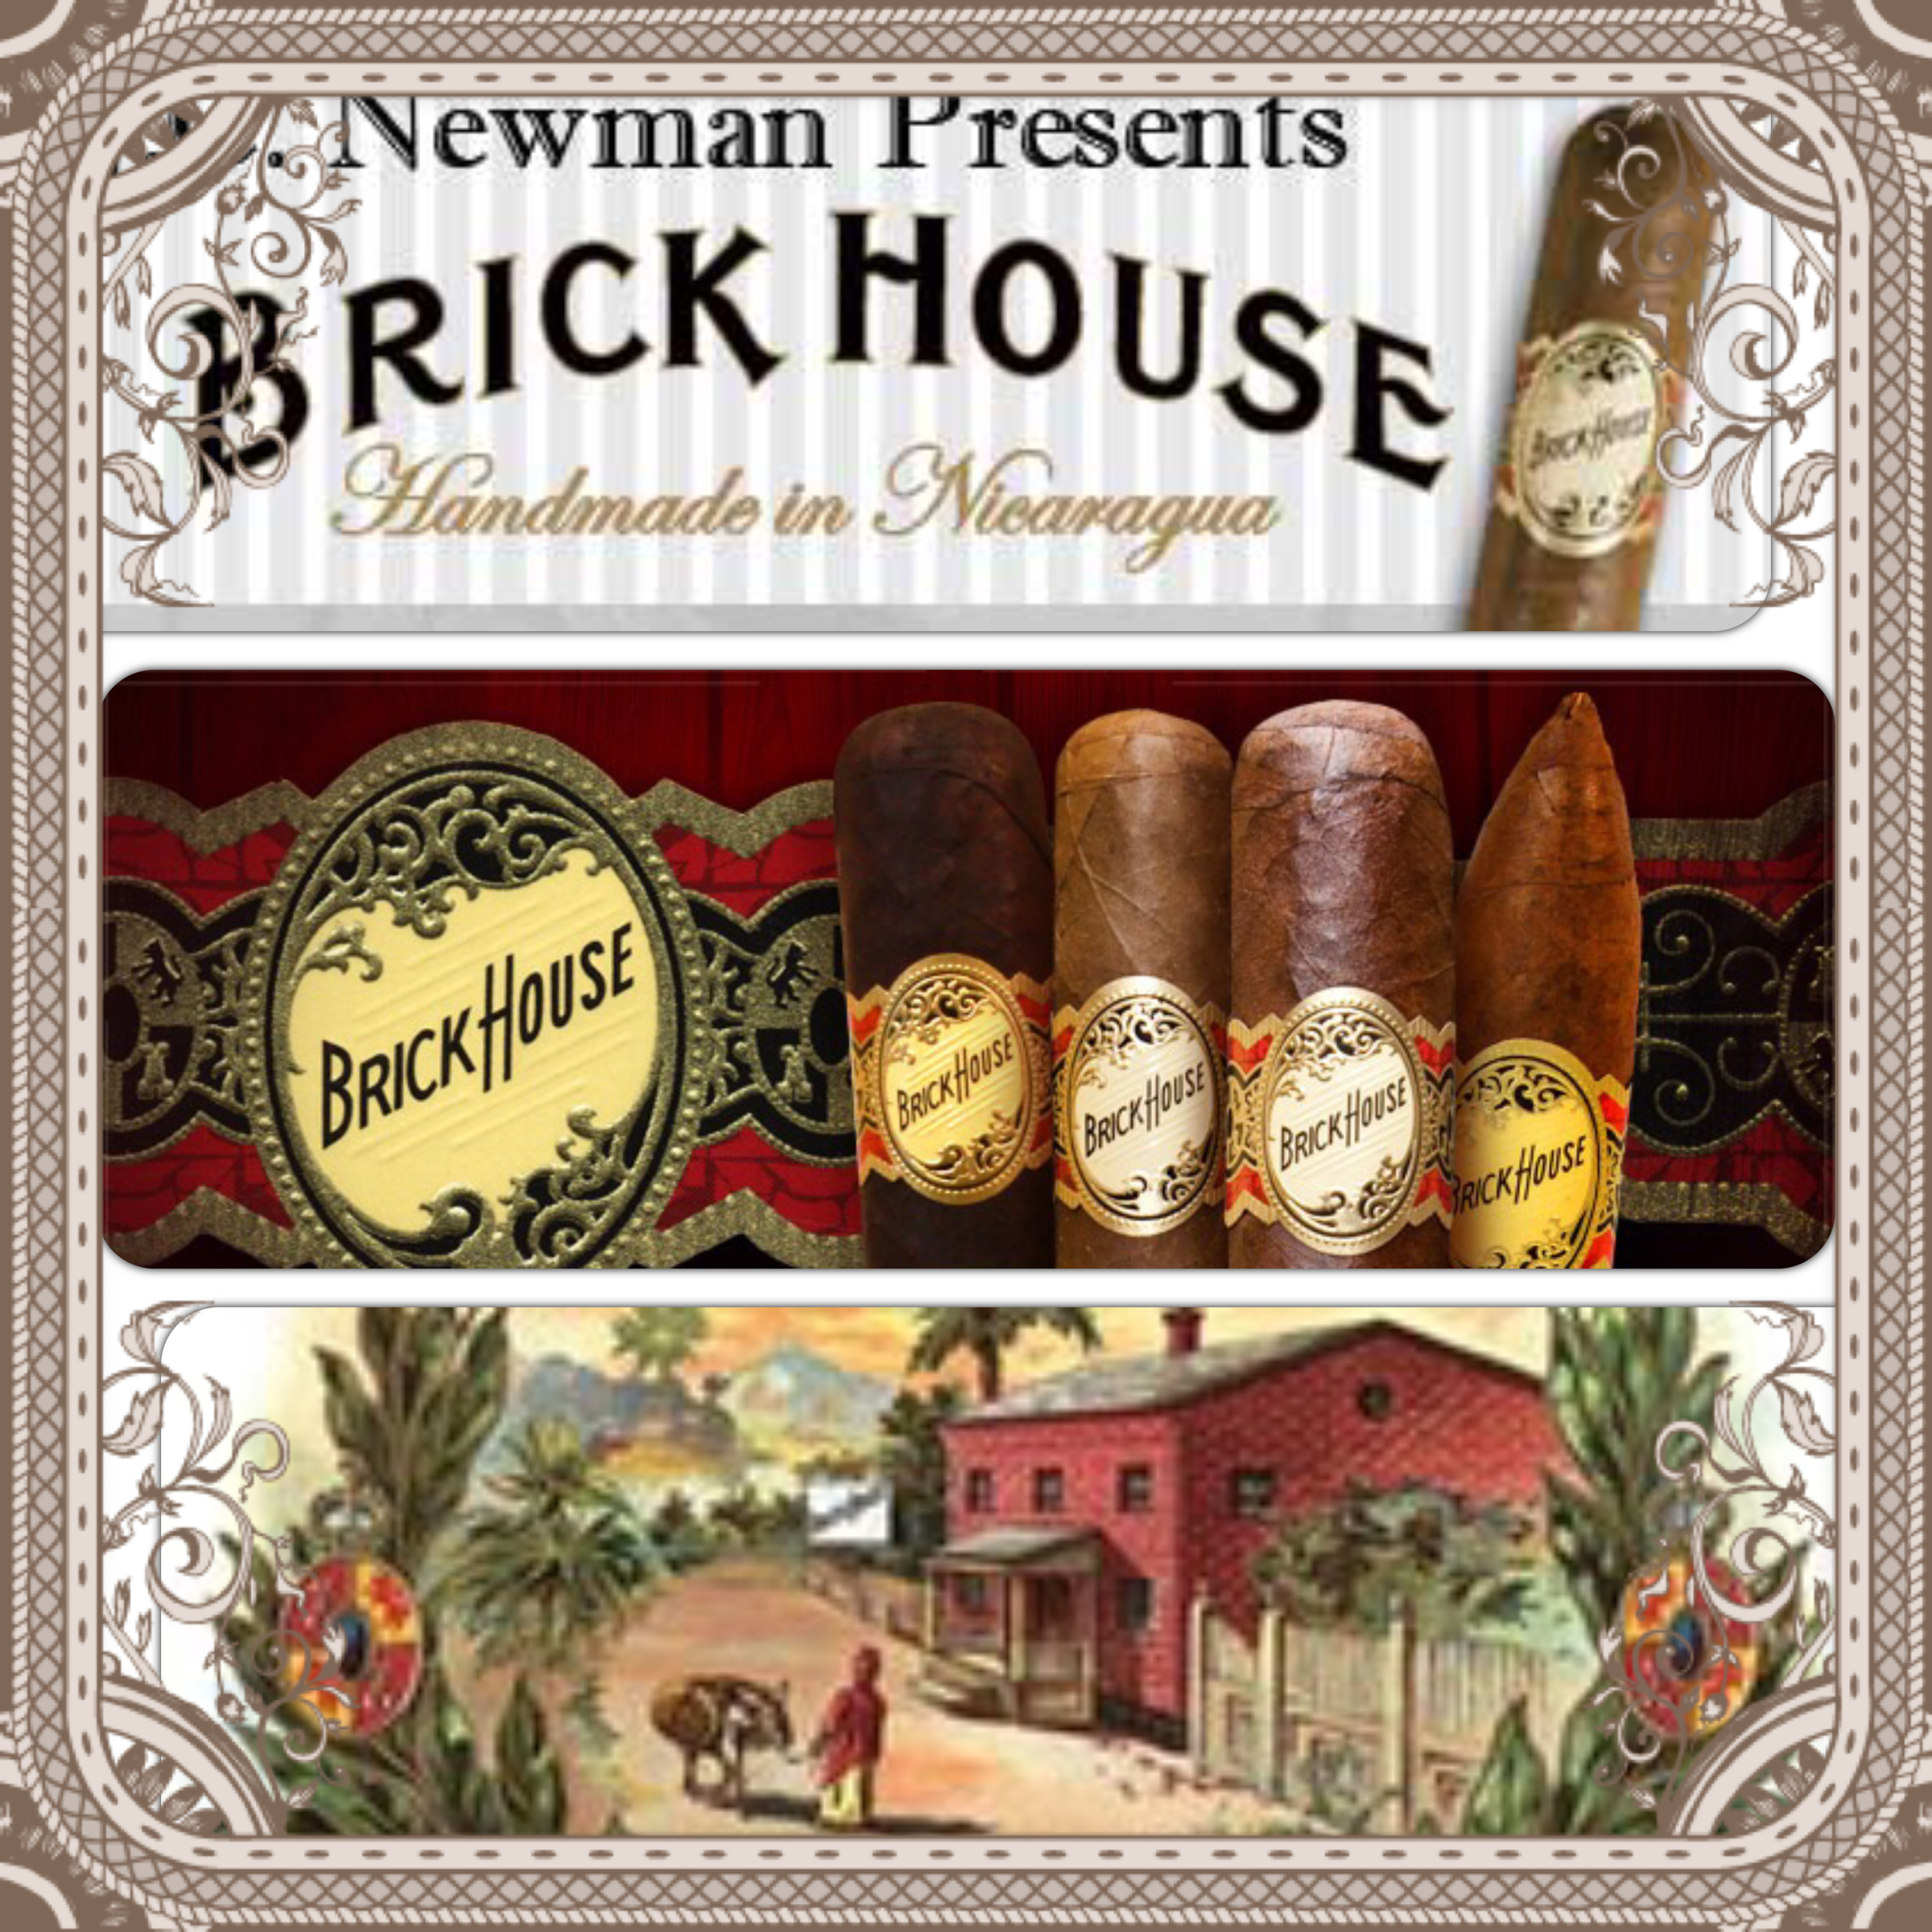 brick-house-cigars-1-.jpg